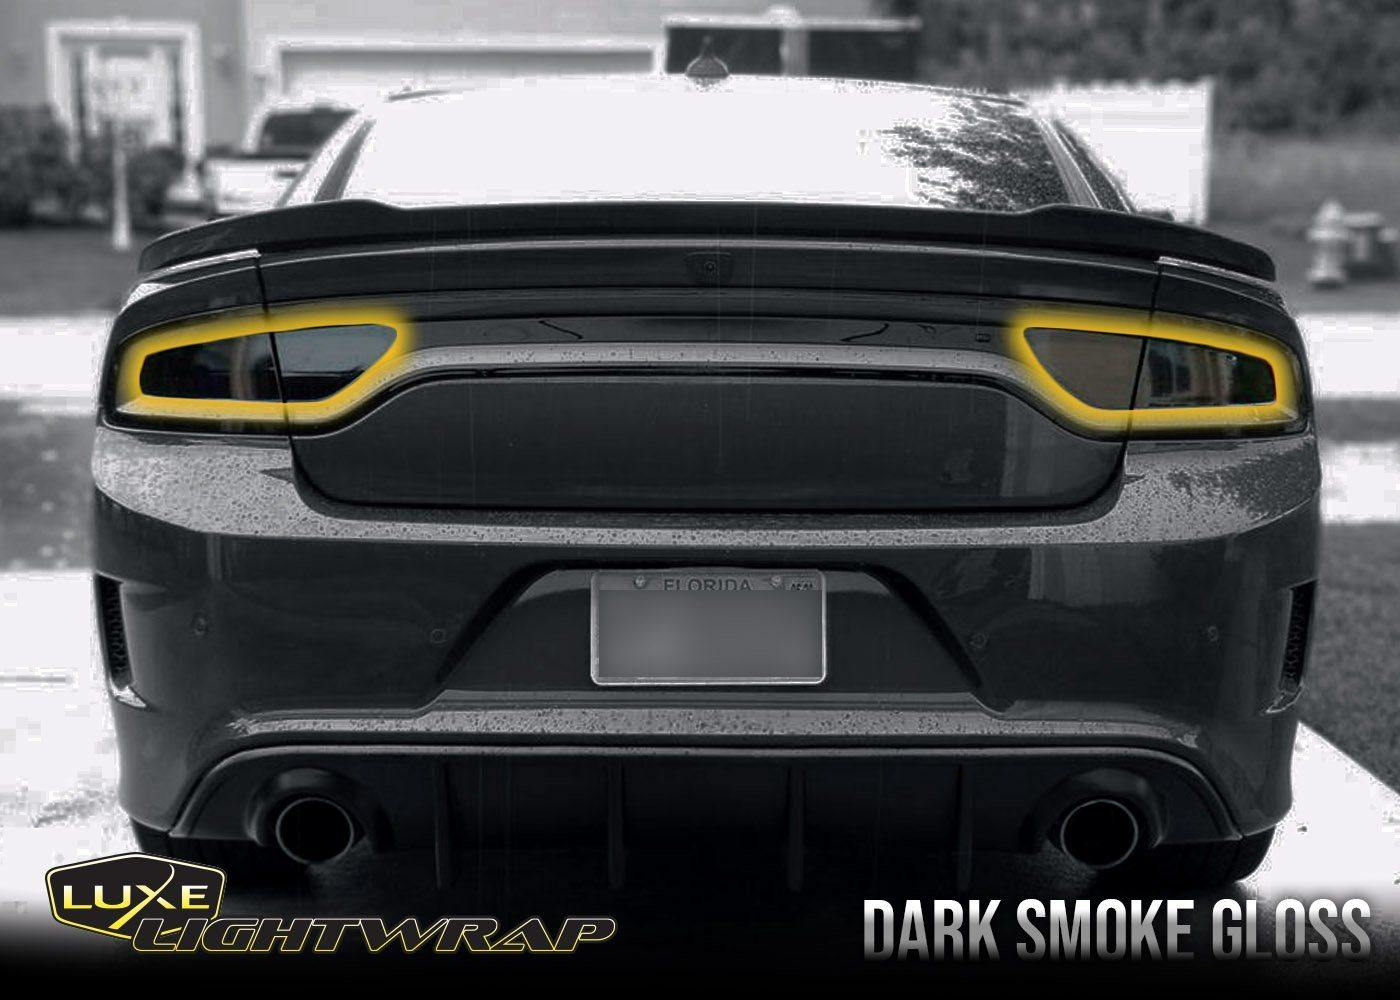 CHARGER rear tail light lamp accent decal compatible with Dodge Charger 2015 2016 2017 2018 2019